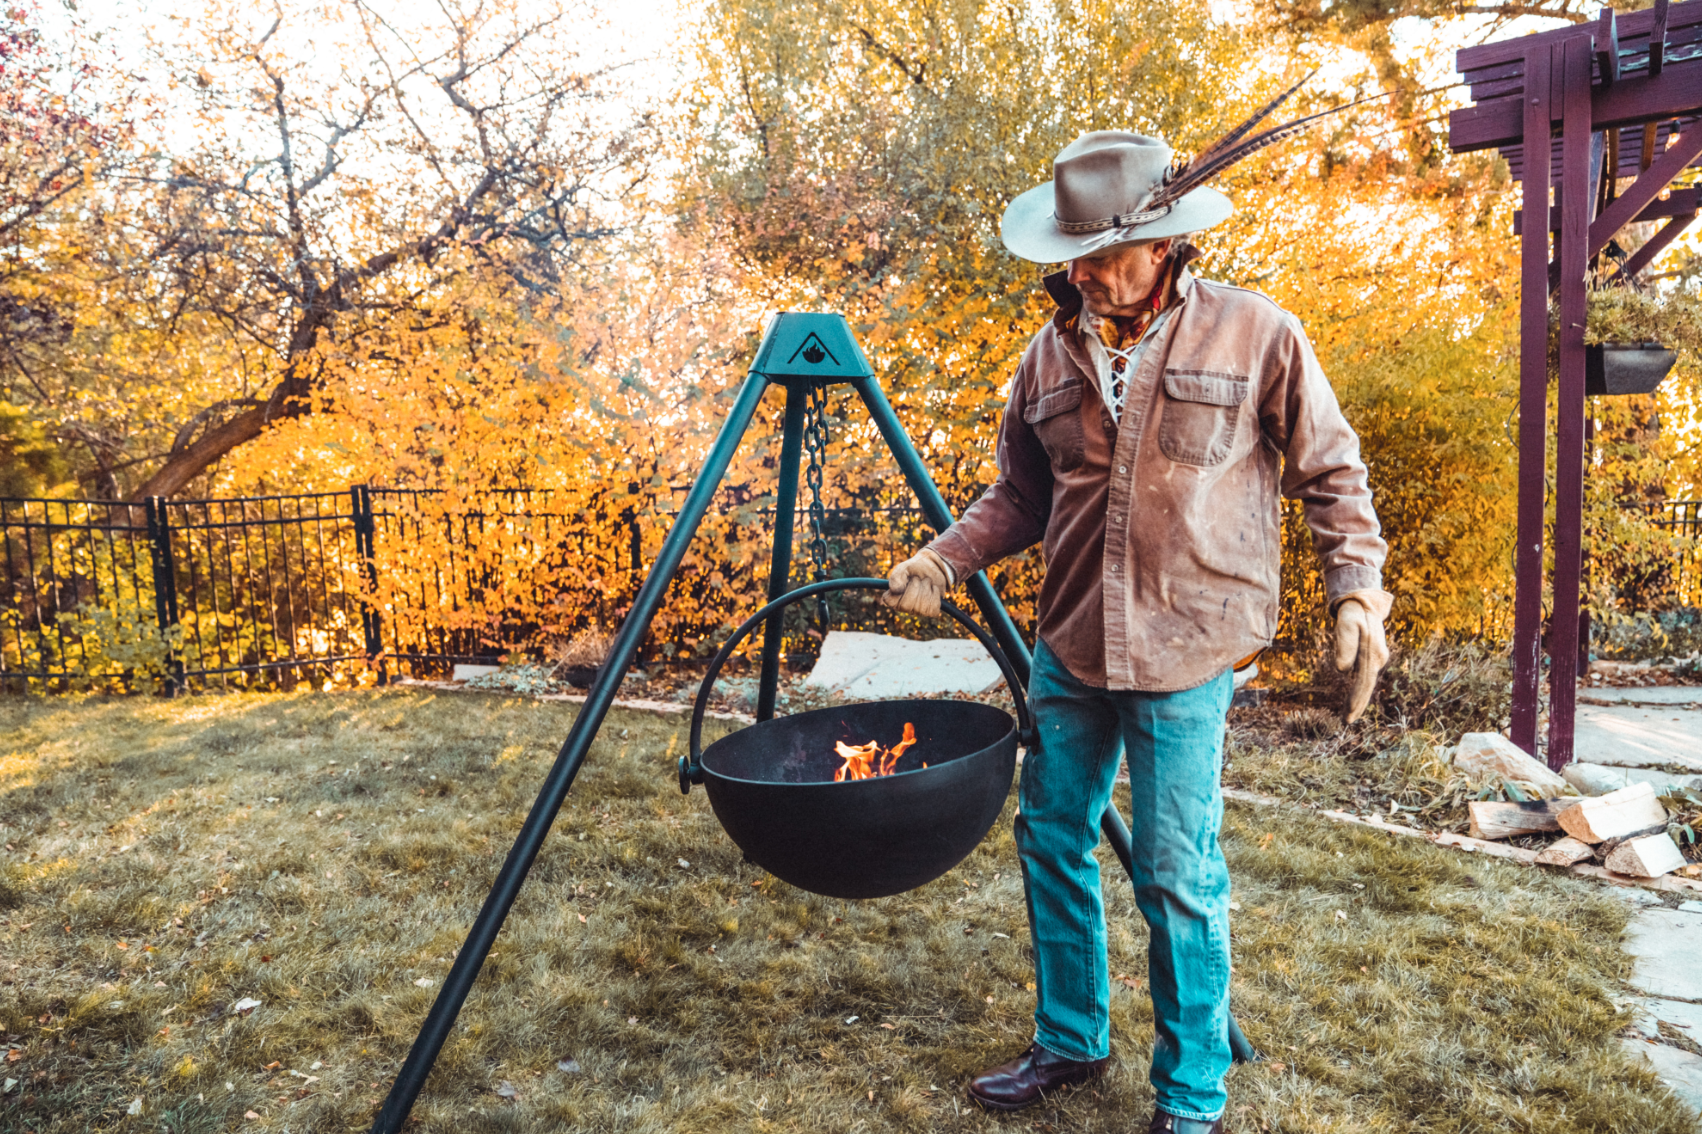 Splurge on a Cowboy Cauldron for cooking dinners or gathering around a campfire.                             BUY IT: $999; cowboycauldron.com